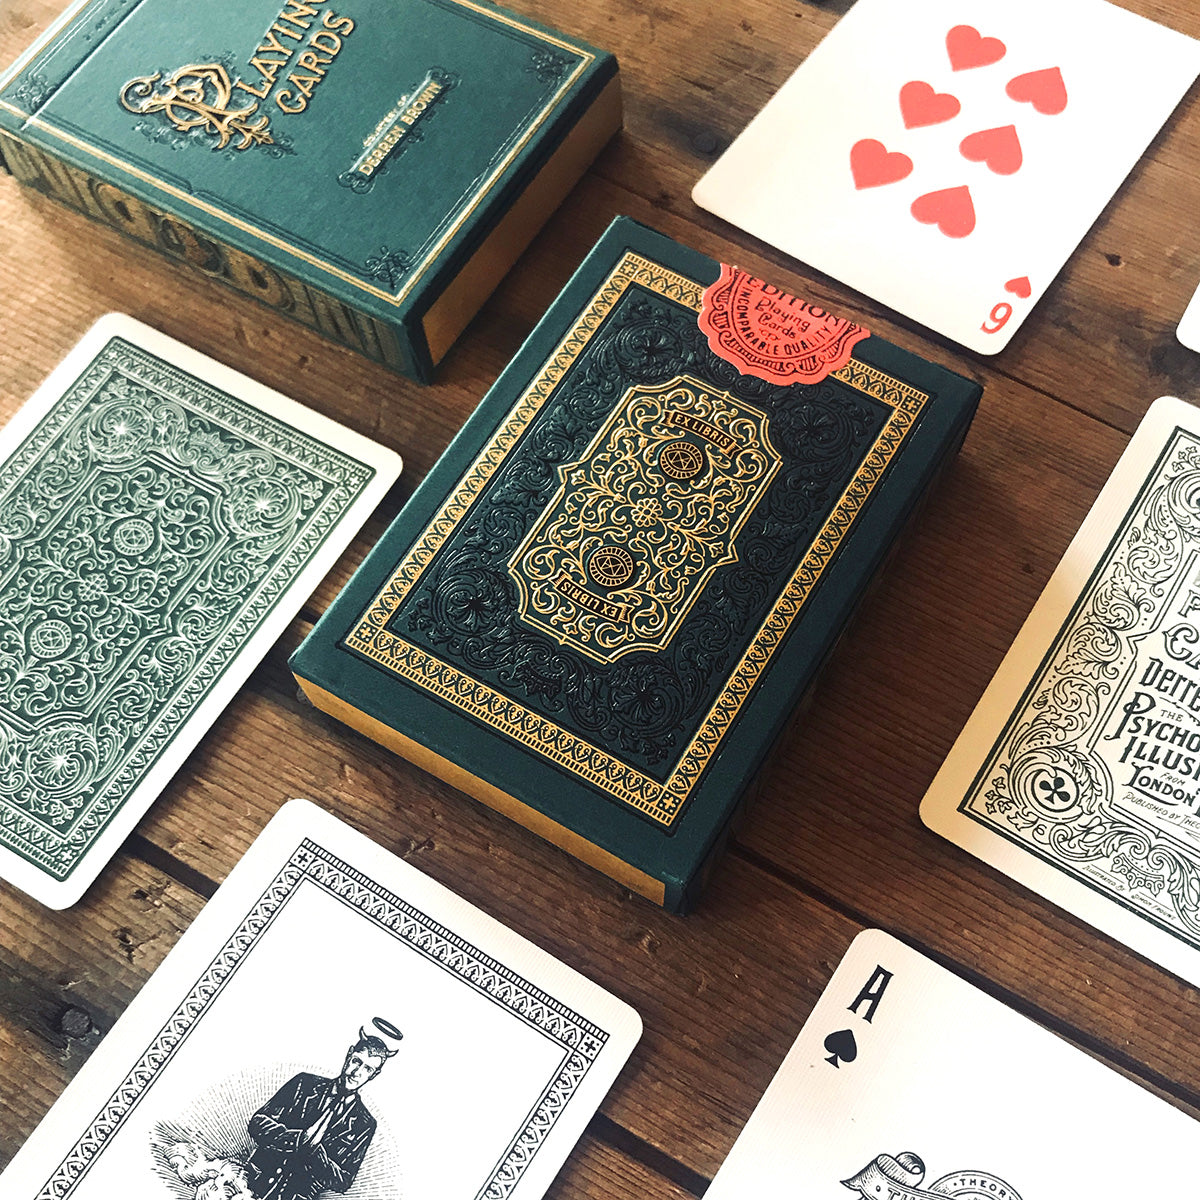 Derren Brown playing cards deck - MR CUP